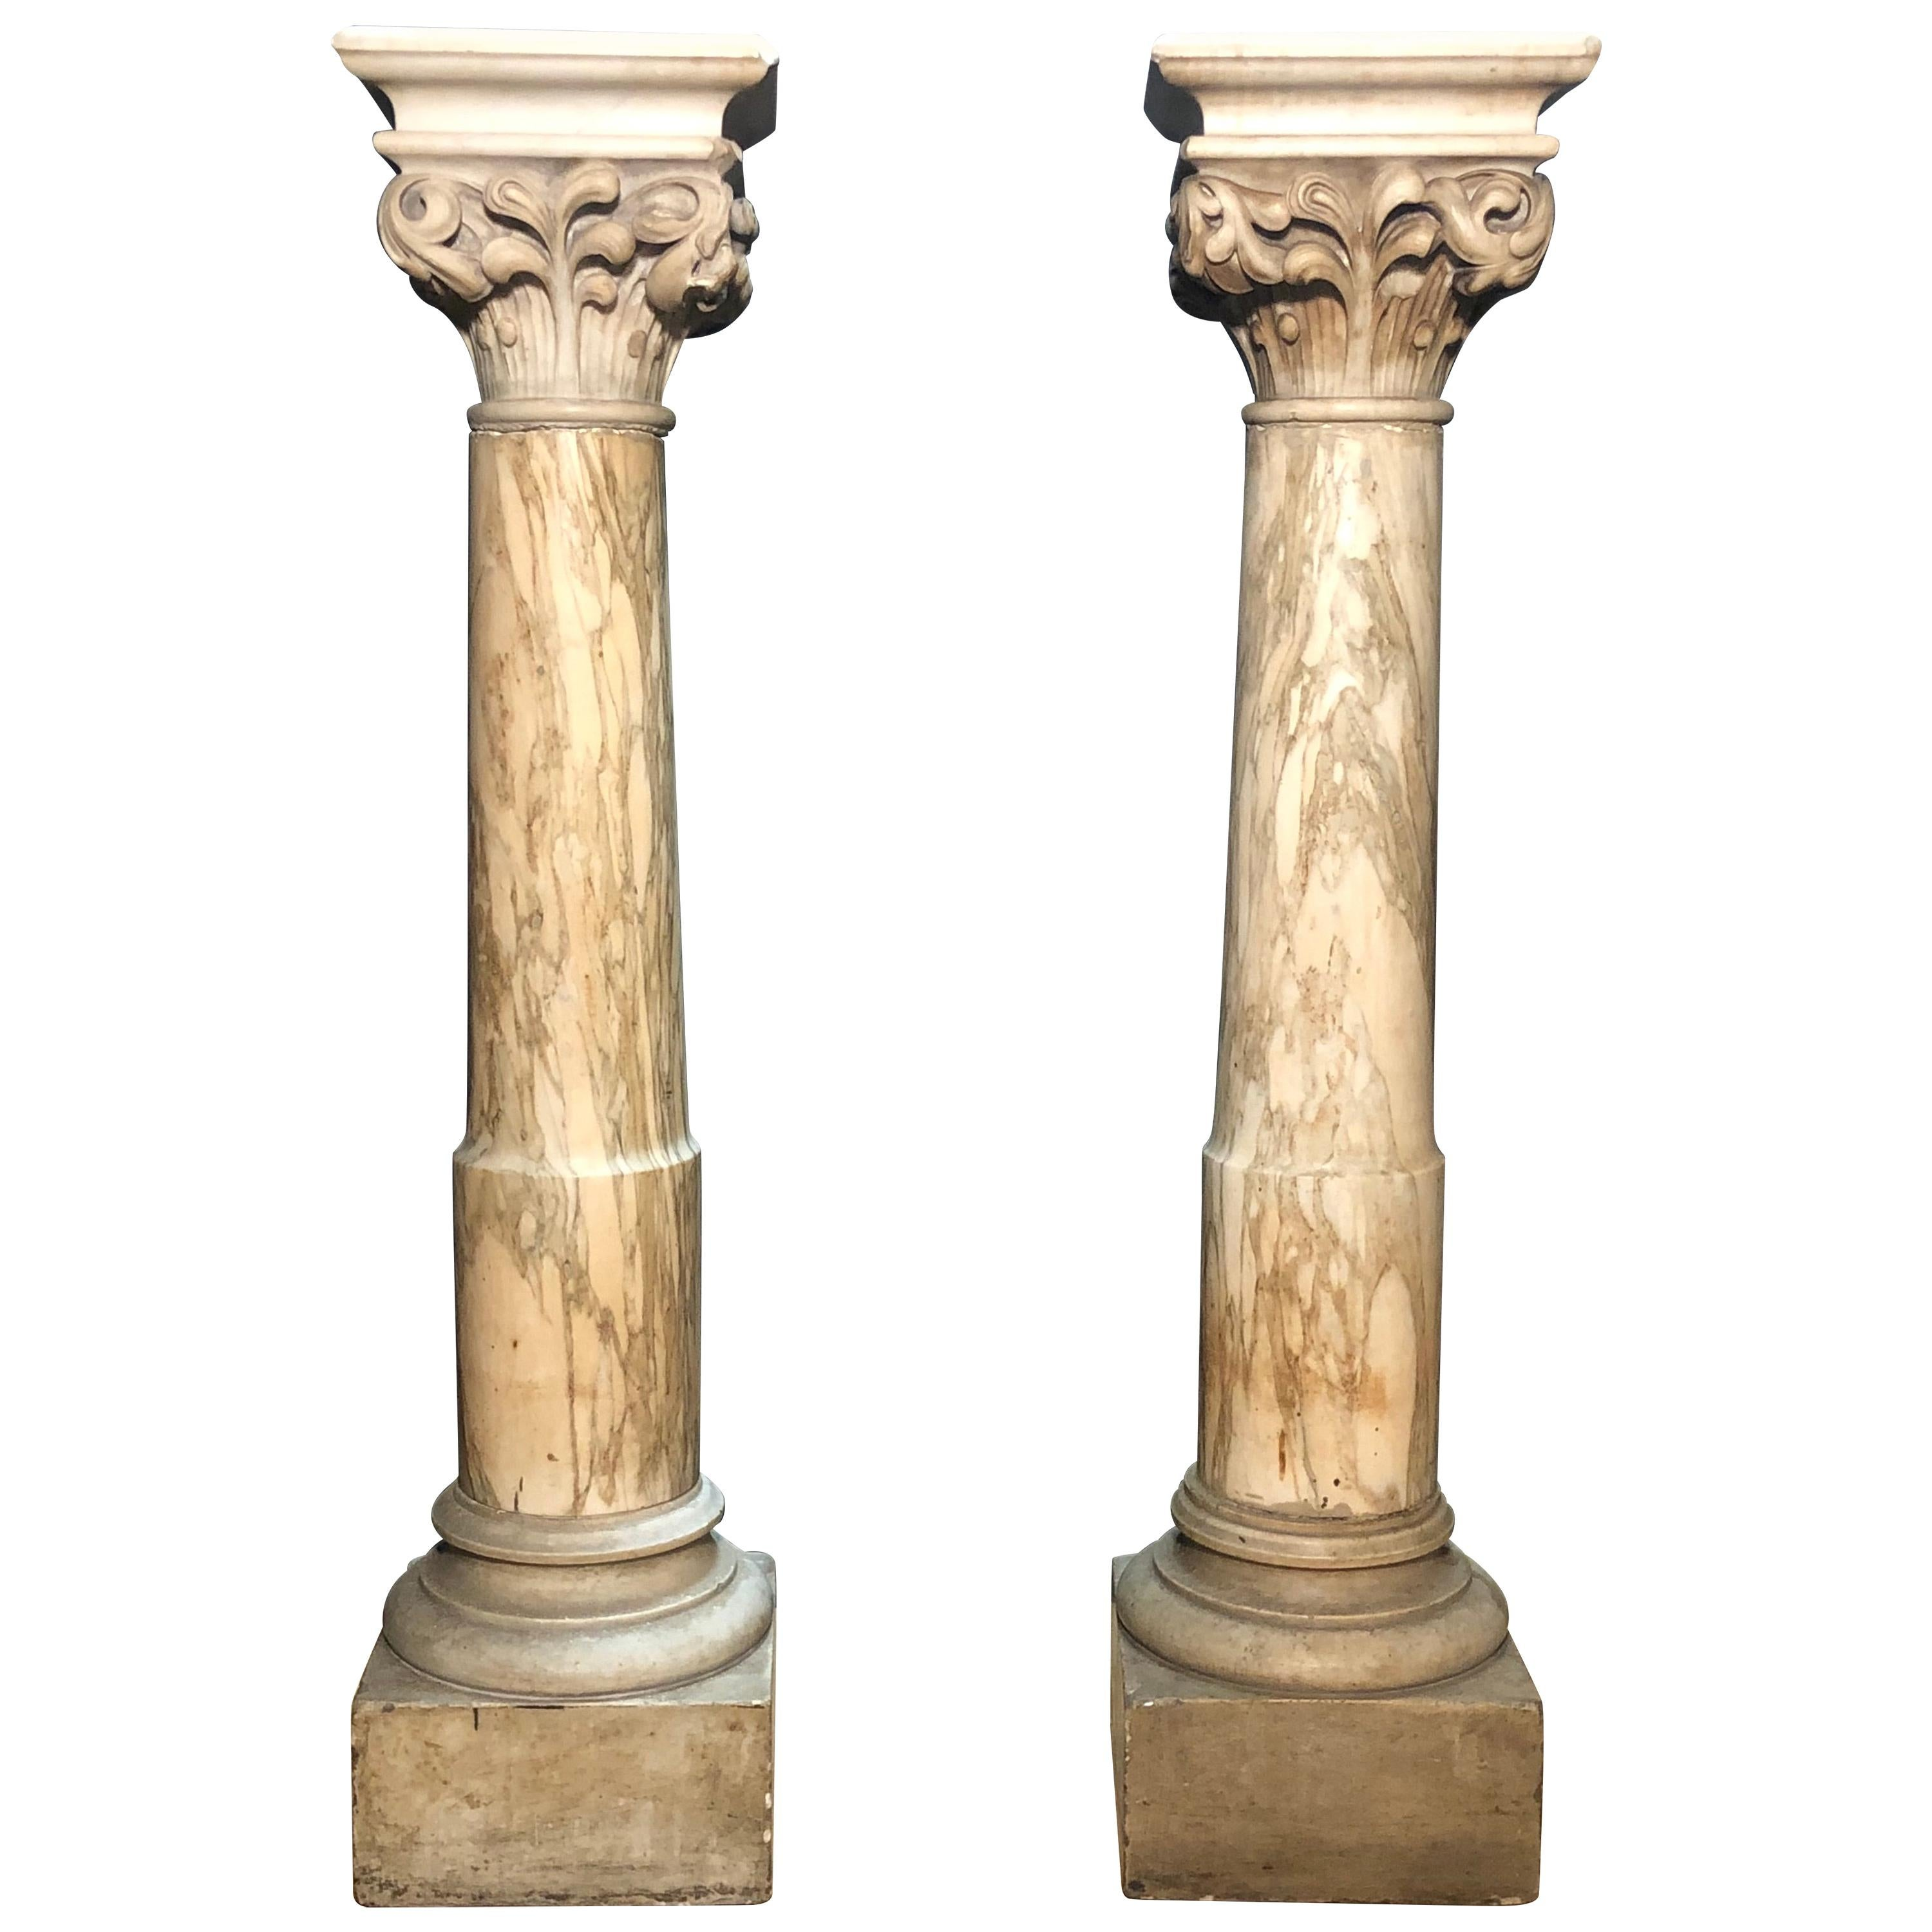 18th-19th Century Grand Tour Italian Carved Marble Pedestals